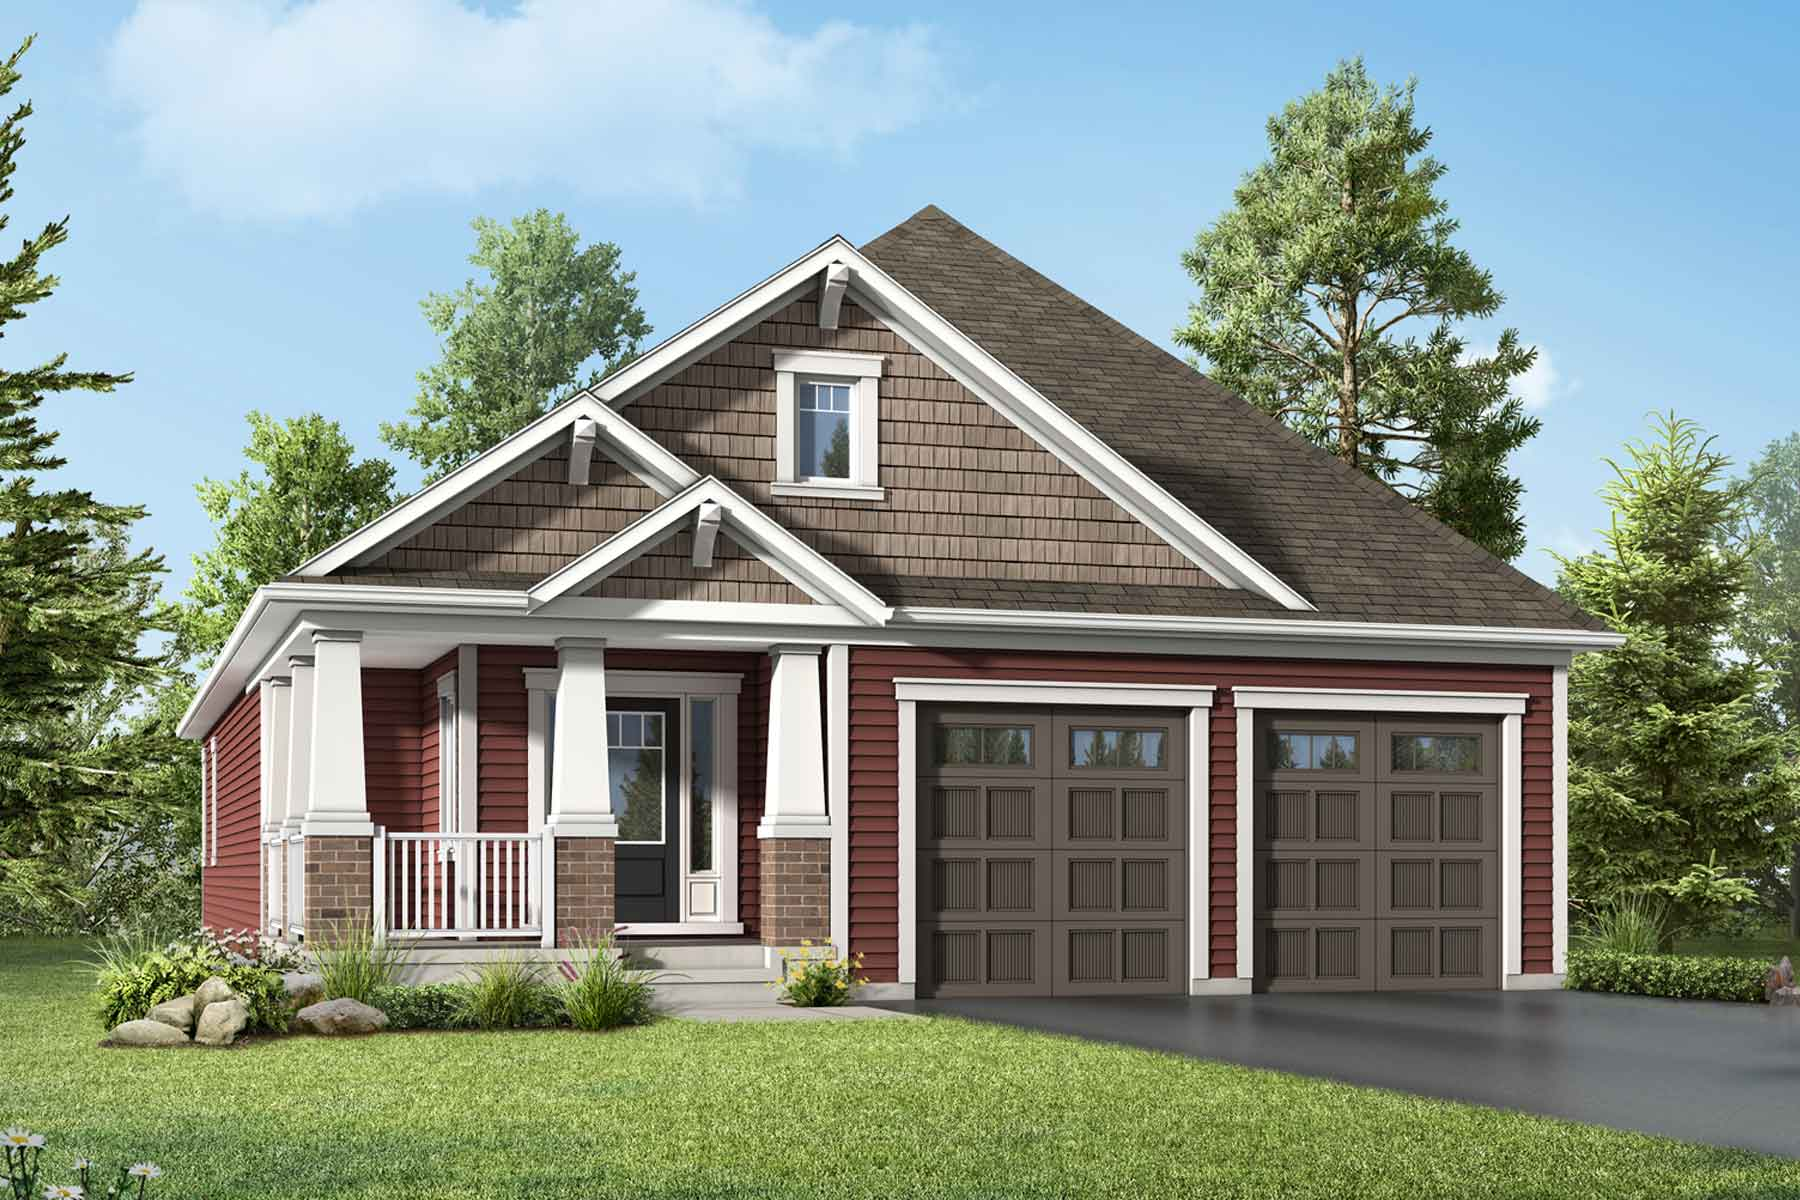 Balsam Plan Elevation Front at White Pines in Bracebridge Ontario by Mattamy Homes